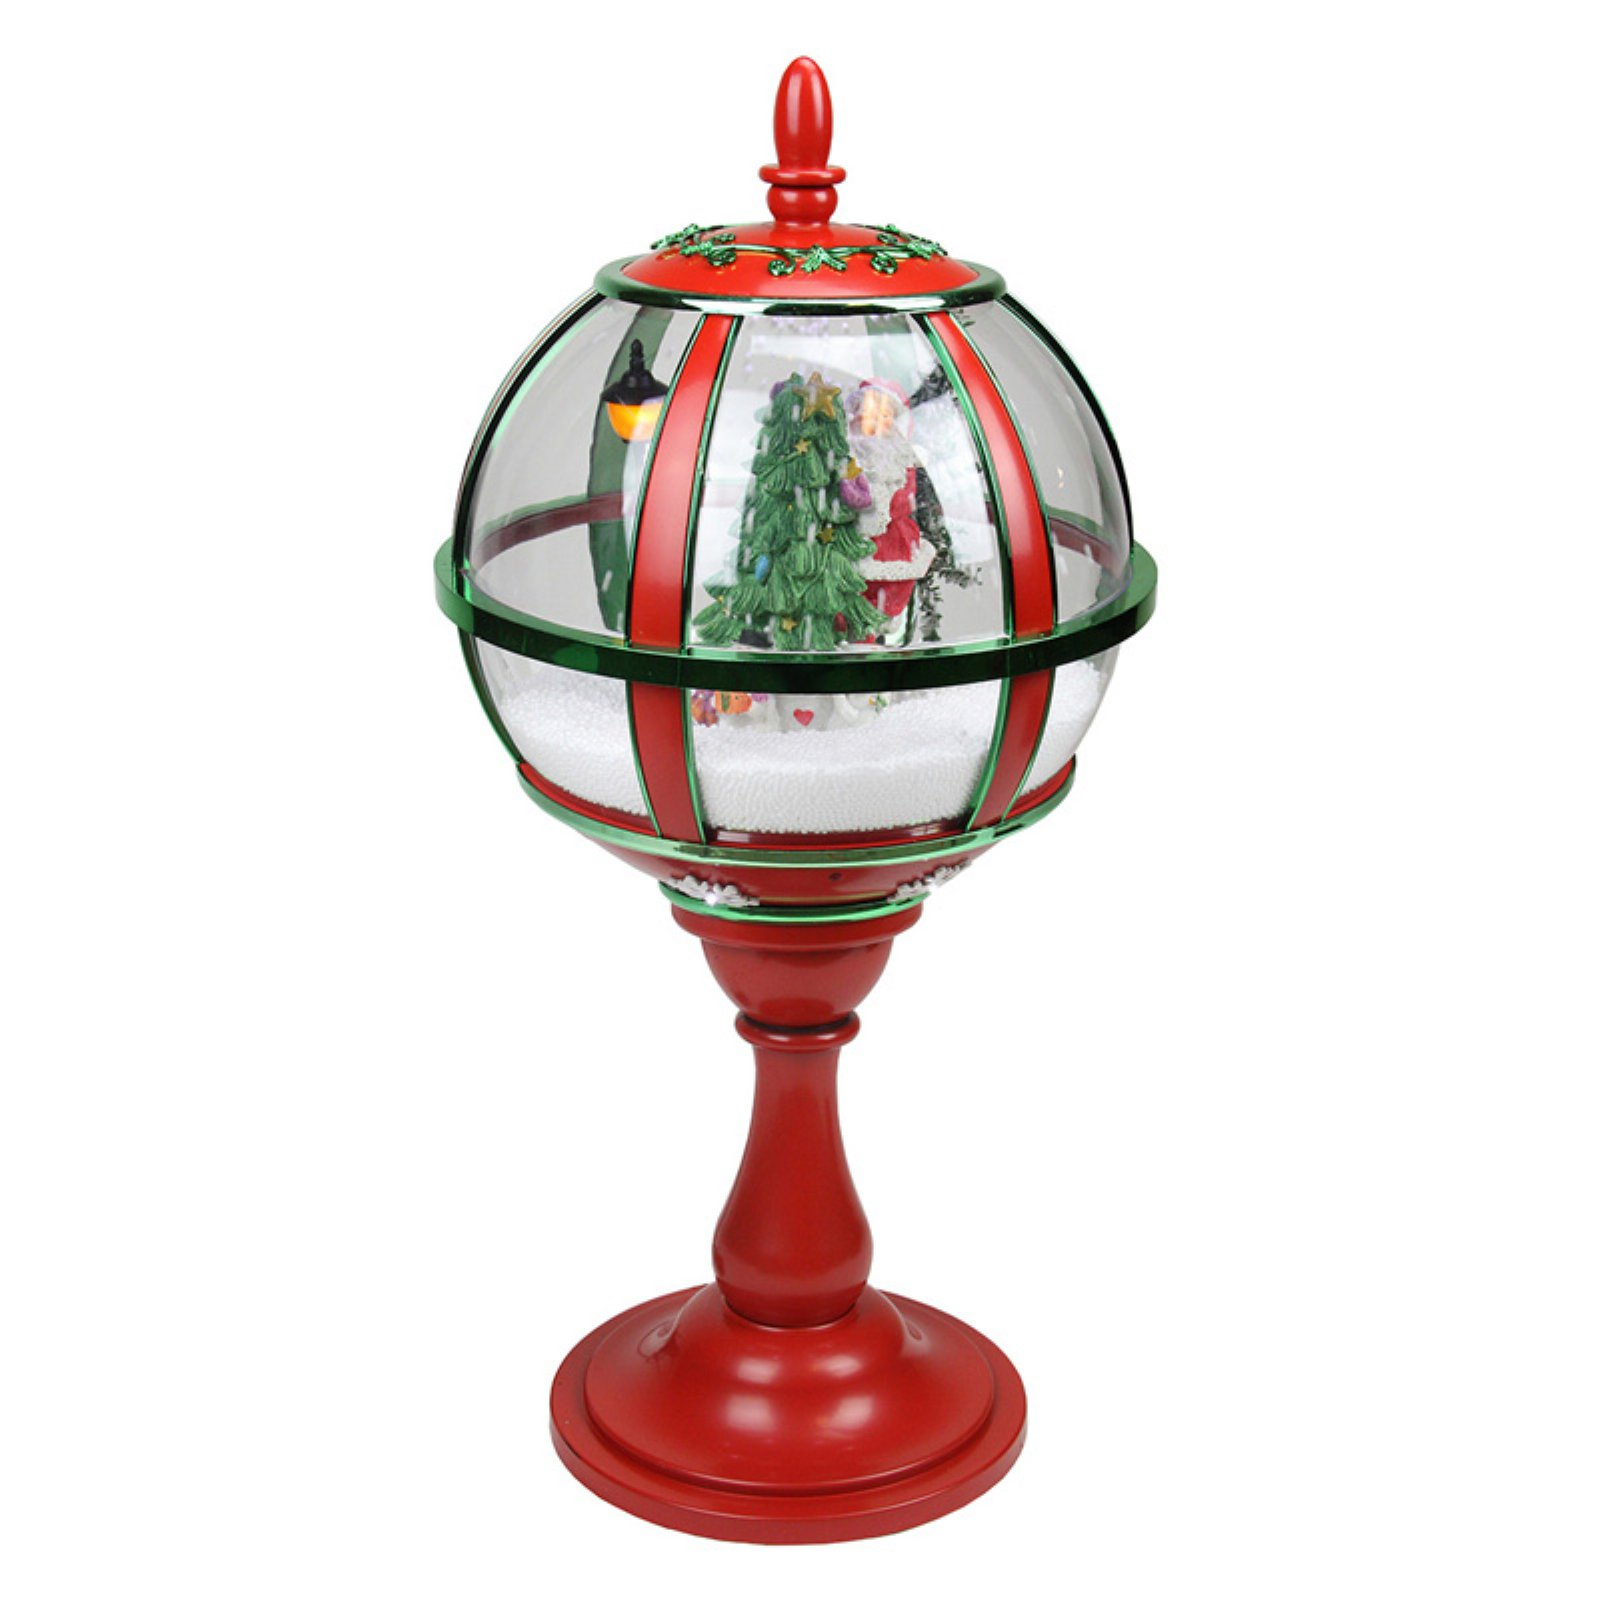 Northlight Lighted Red Musical Snowing Santa with Christmas Tree Table Top Street Lamp